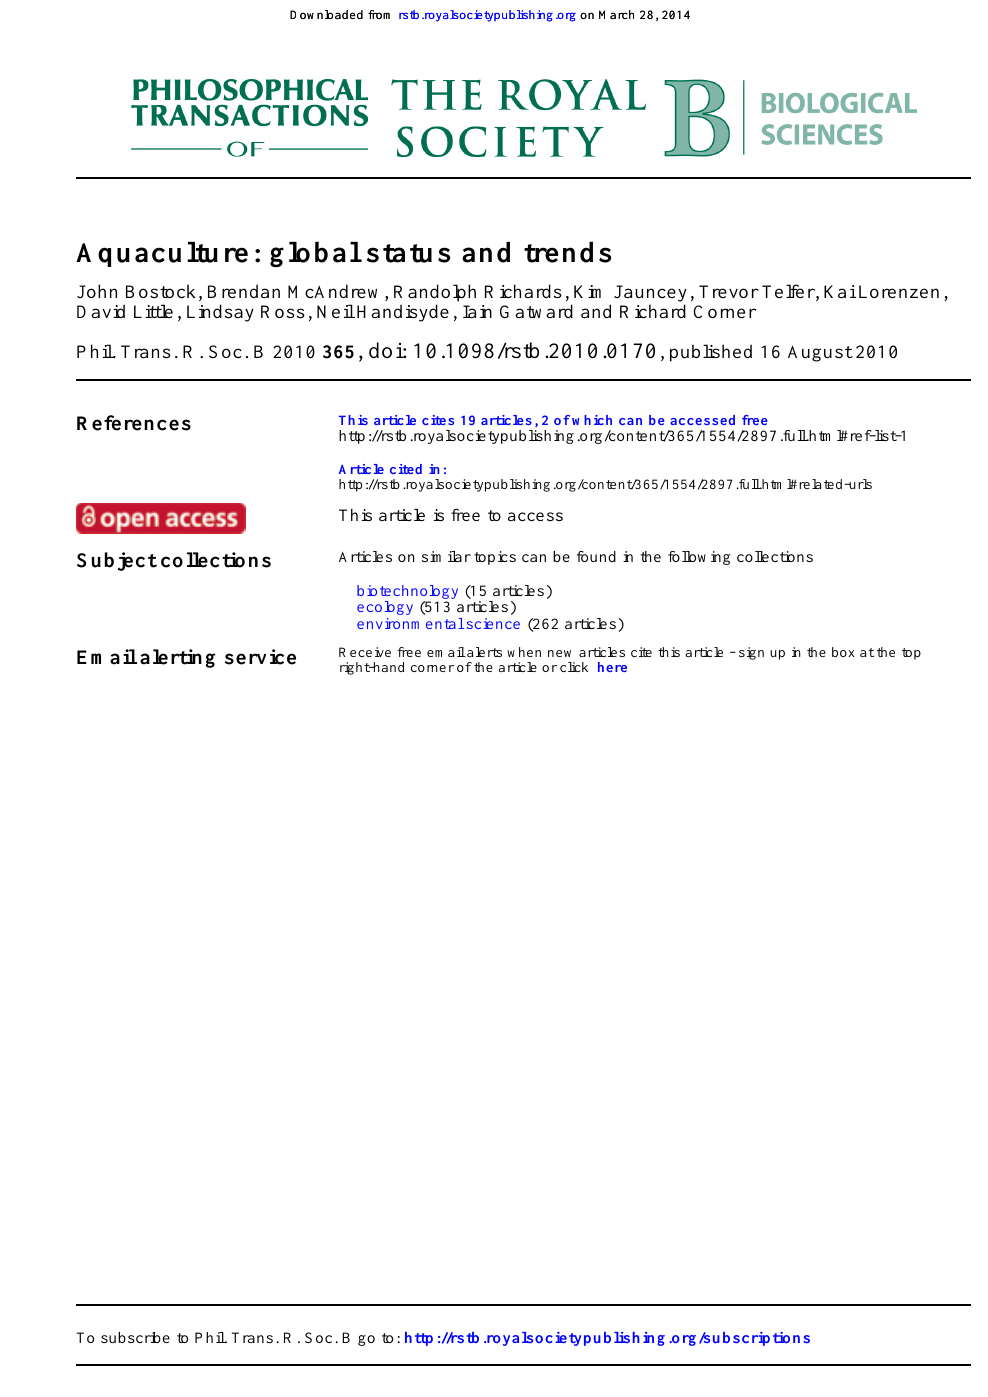 Aquaculture: global status and trends – topic of research